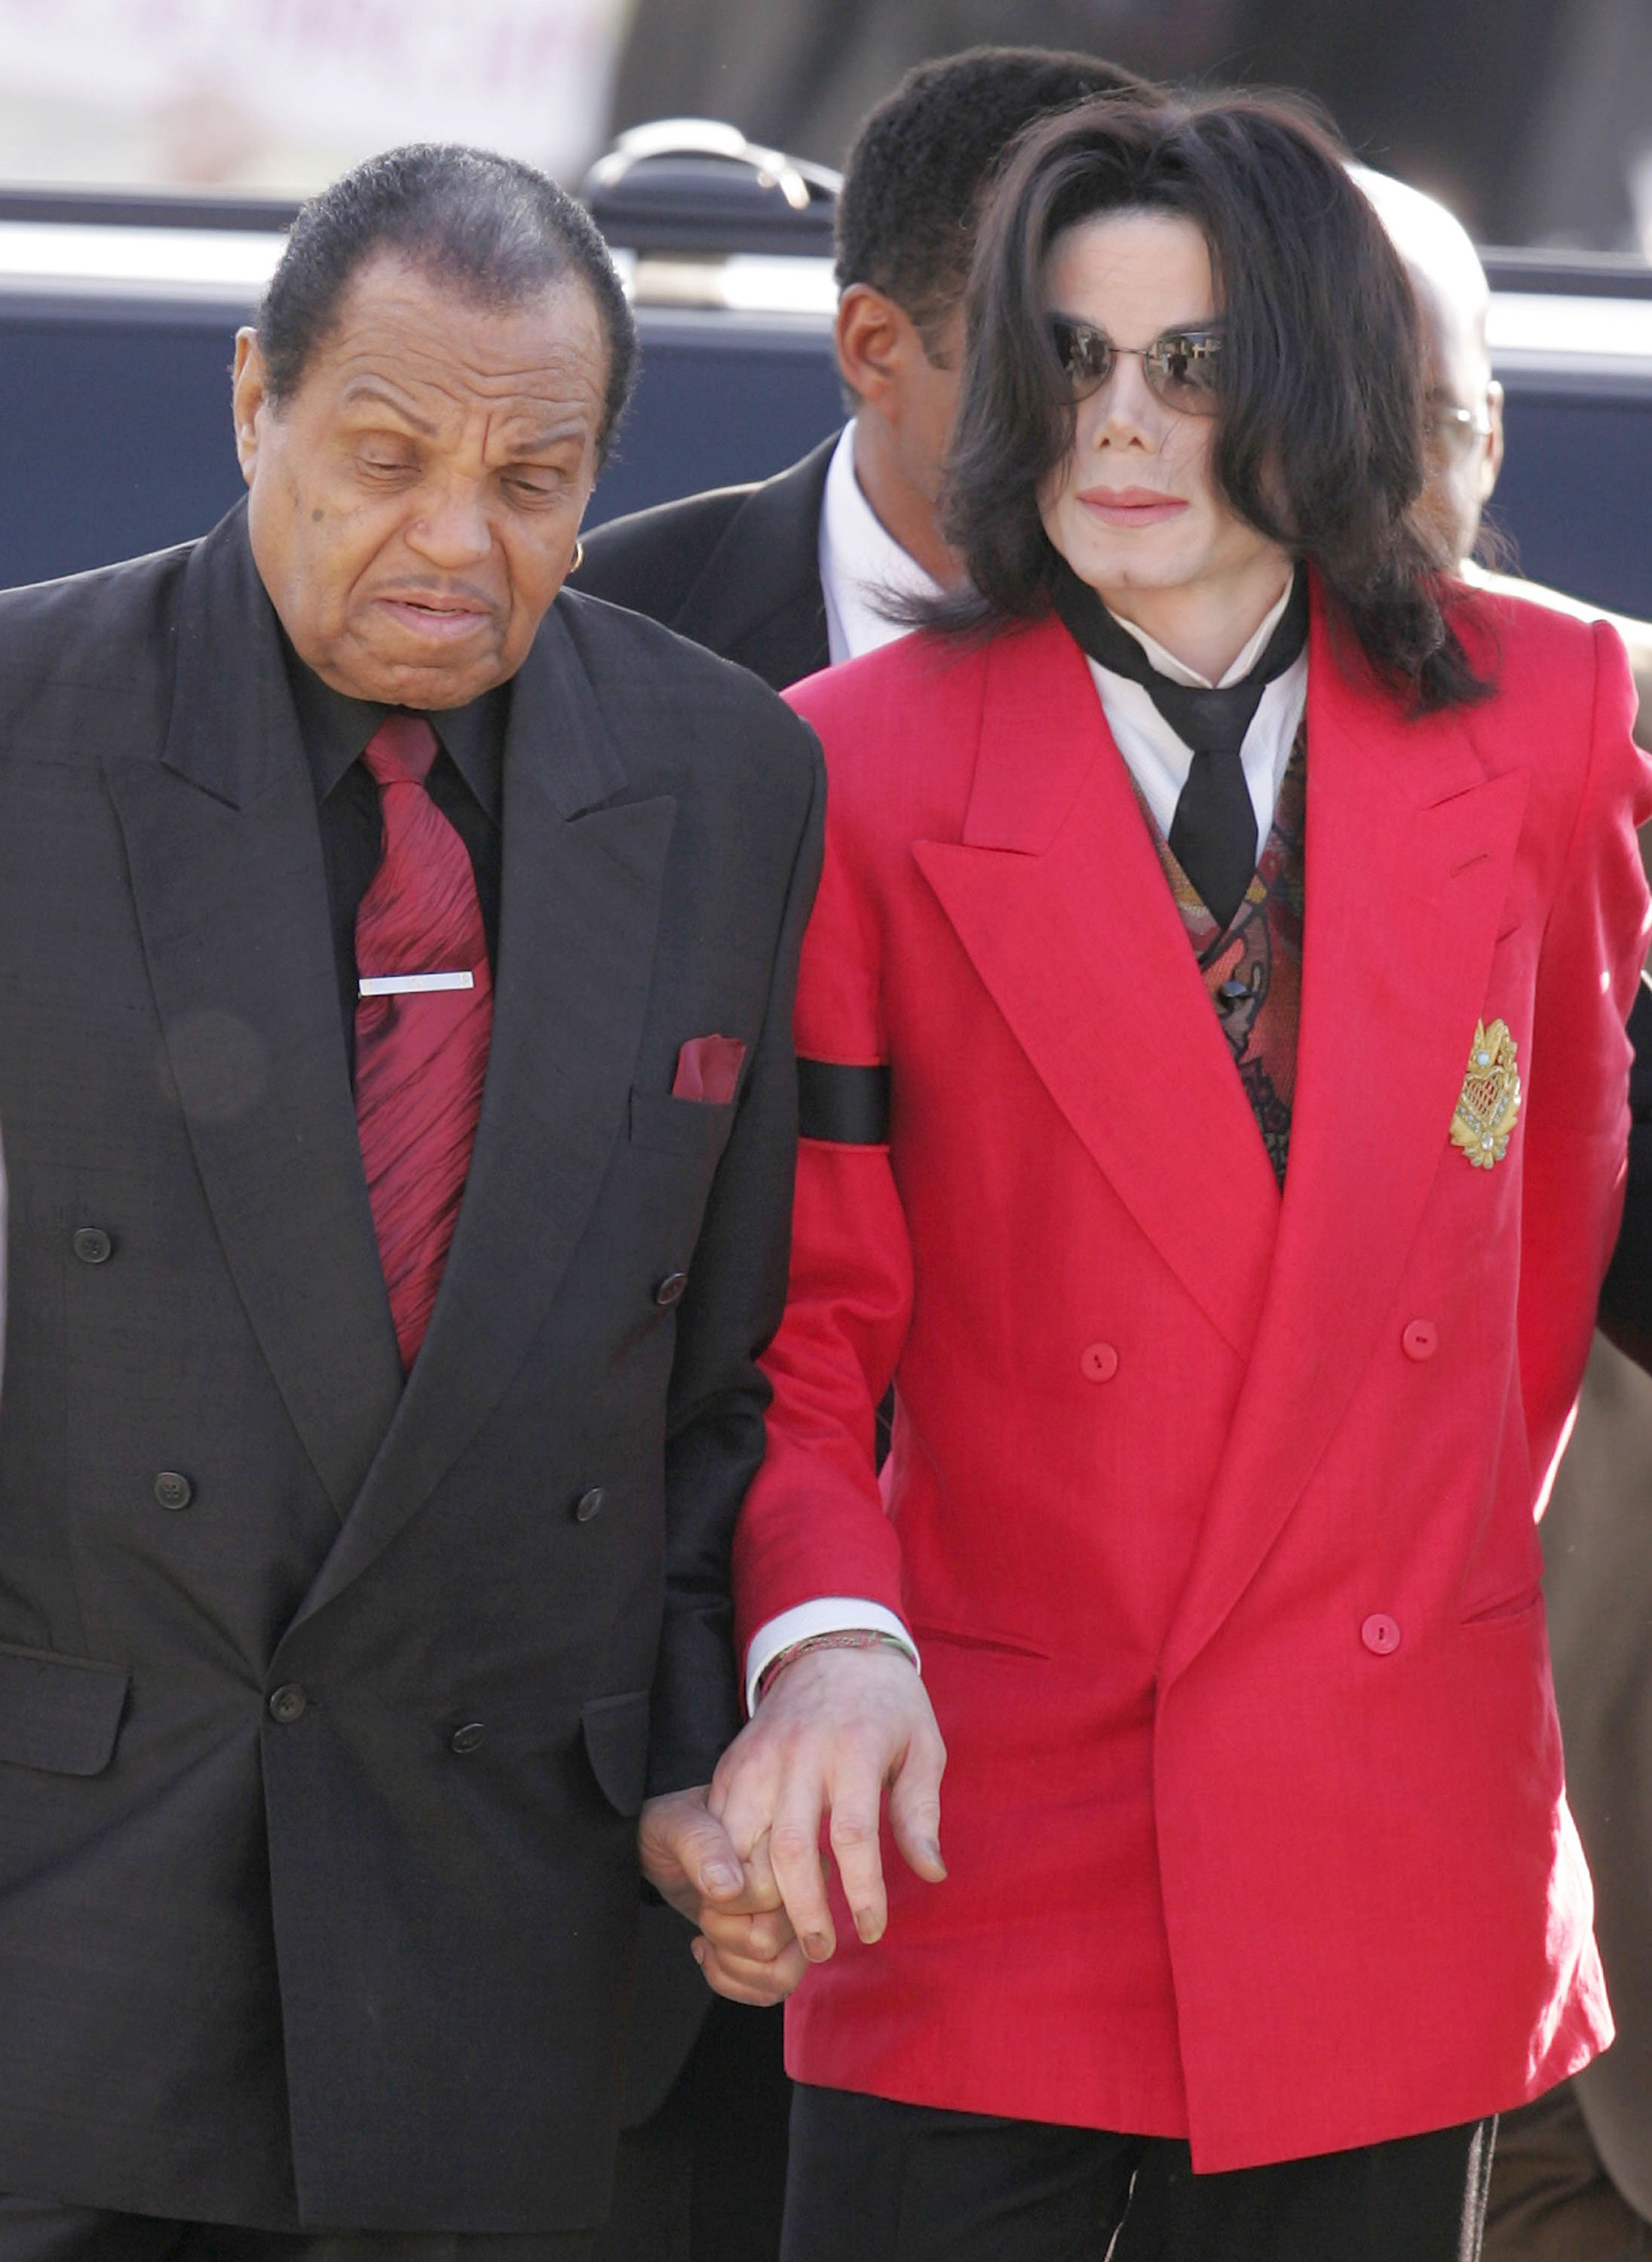 Michael Jackson und Joe Jackson | Quelle: Getty Images/Global Images Ukraine